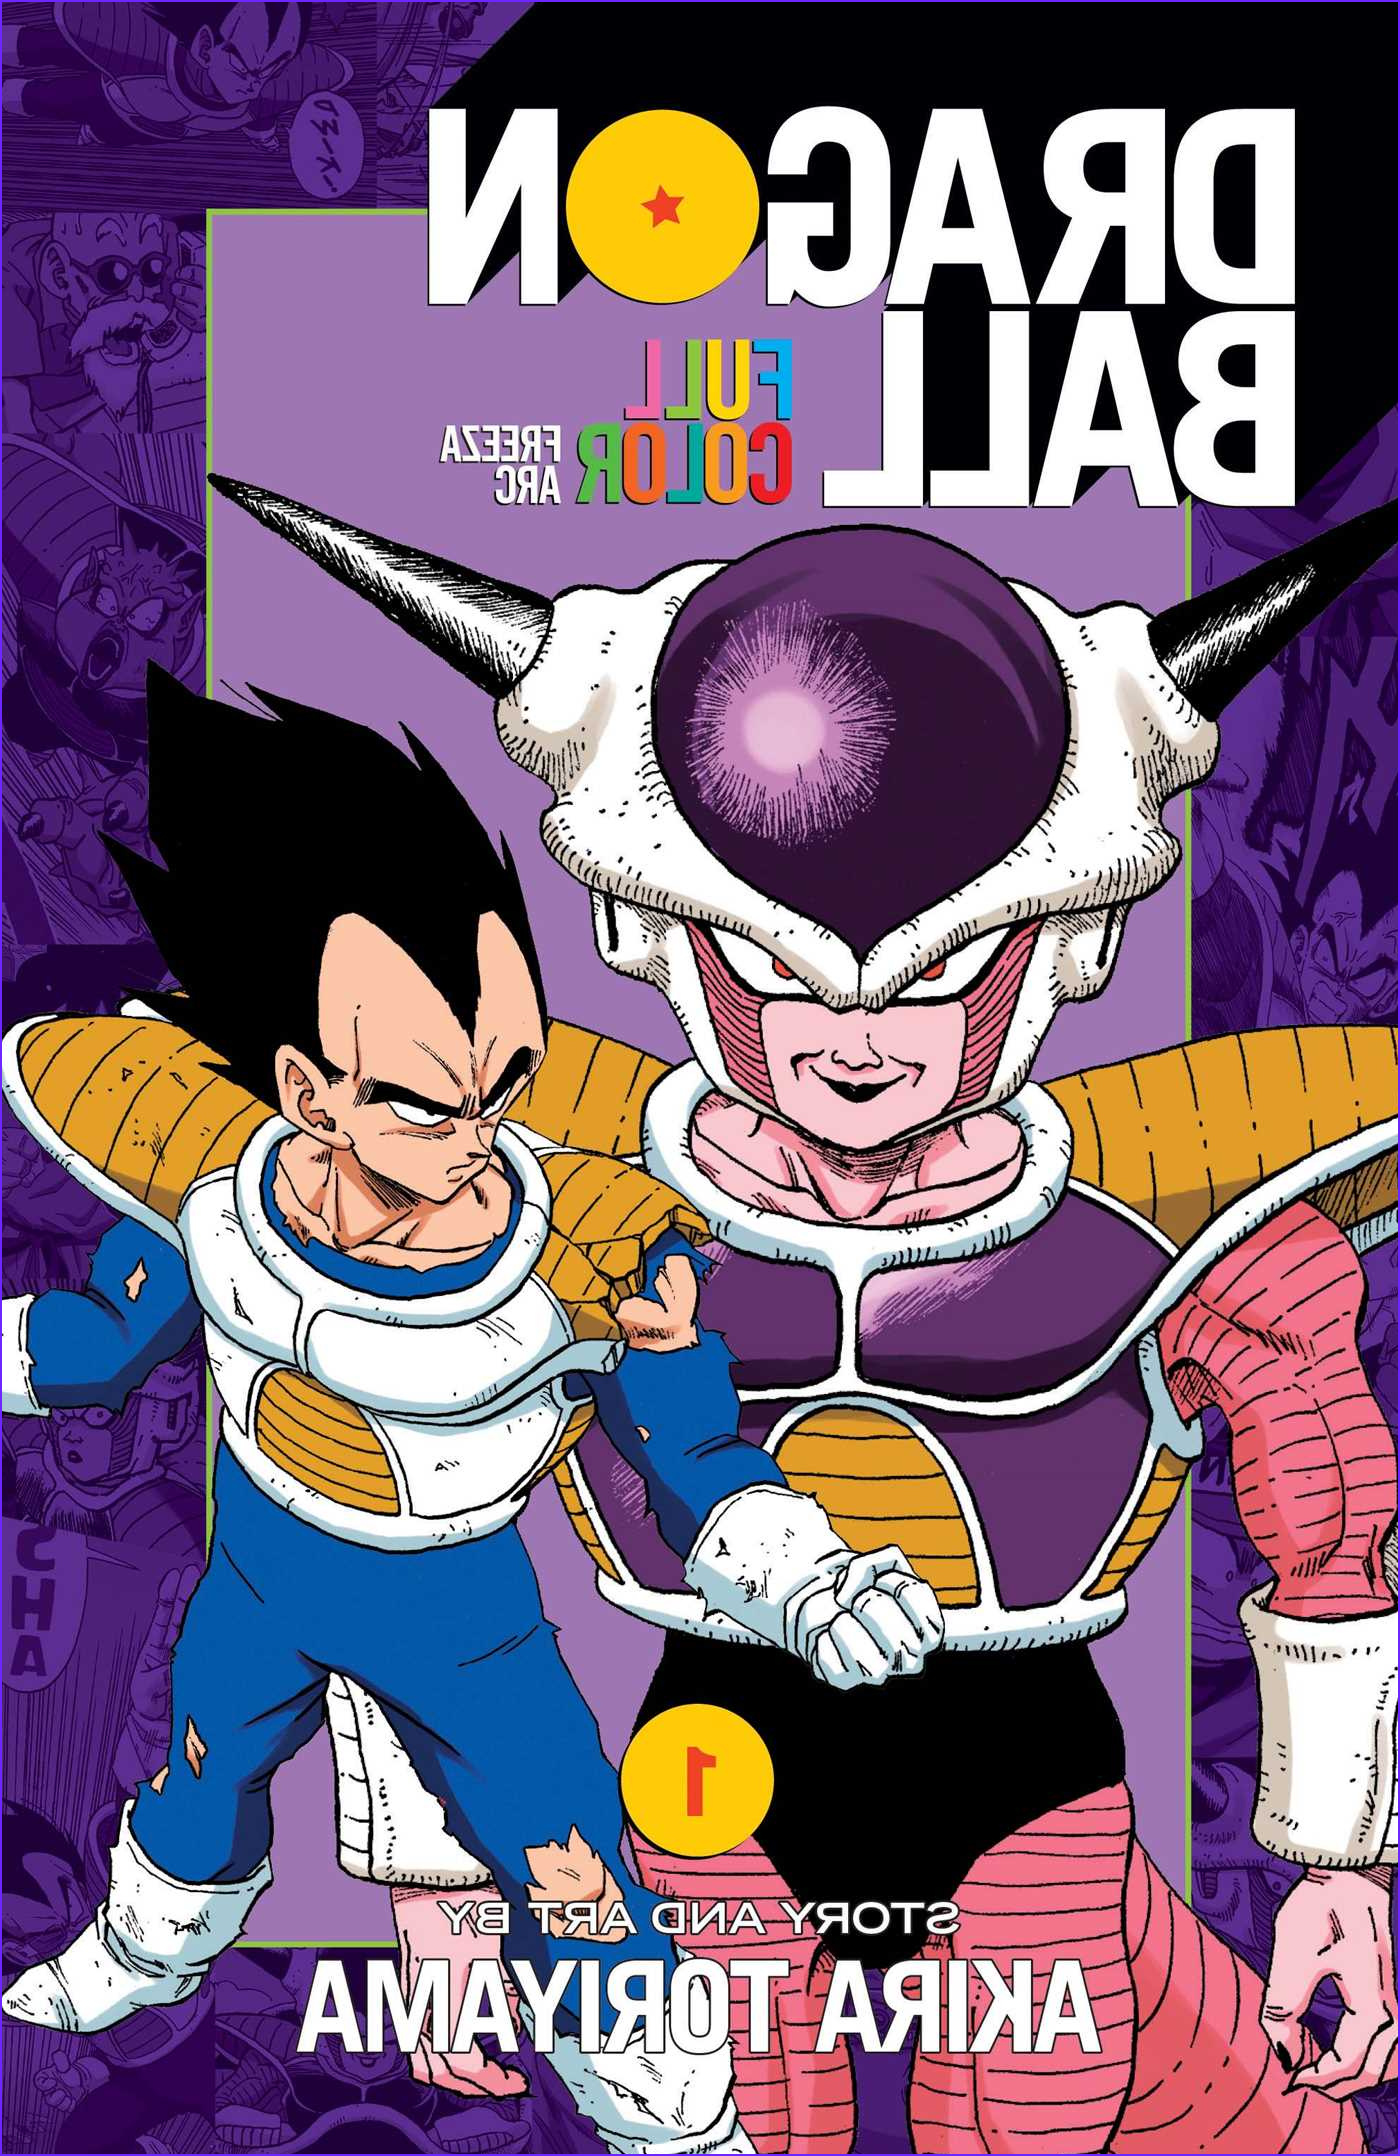 Coloring Dragonball Z Awesome Images Dragon Ball Full Color Freeza Arc Vol 1